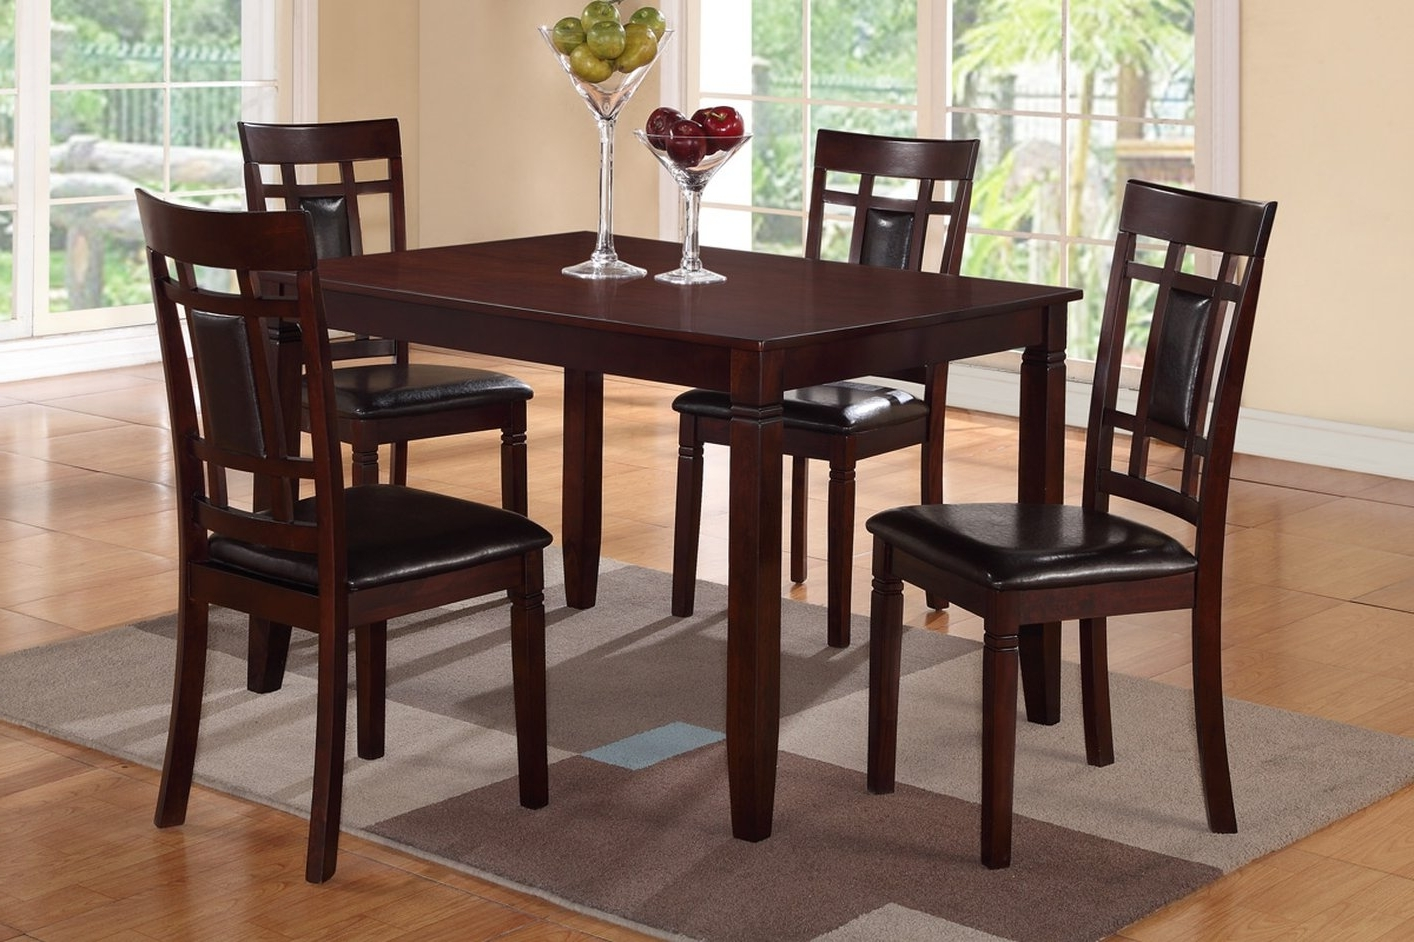 56 Dining Table Chair Set, Elegant Formal Dining Room Design With Pertaining To 2017 Dining Table Chair Sets (View 25 of 25)